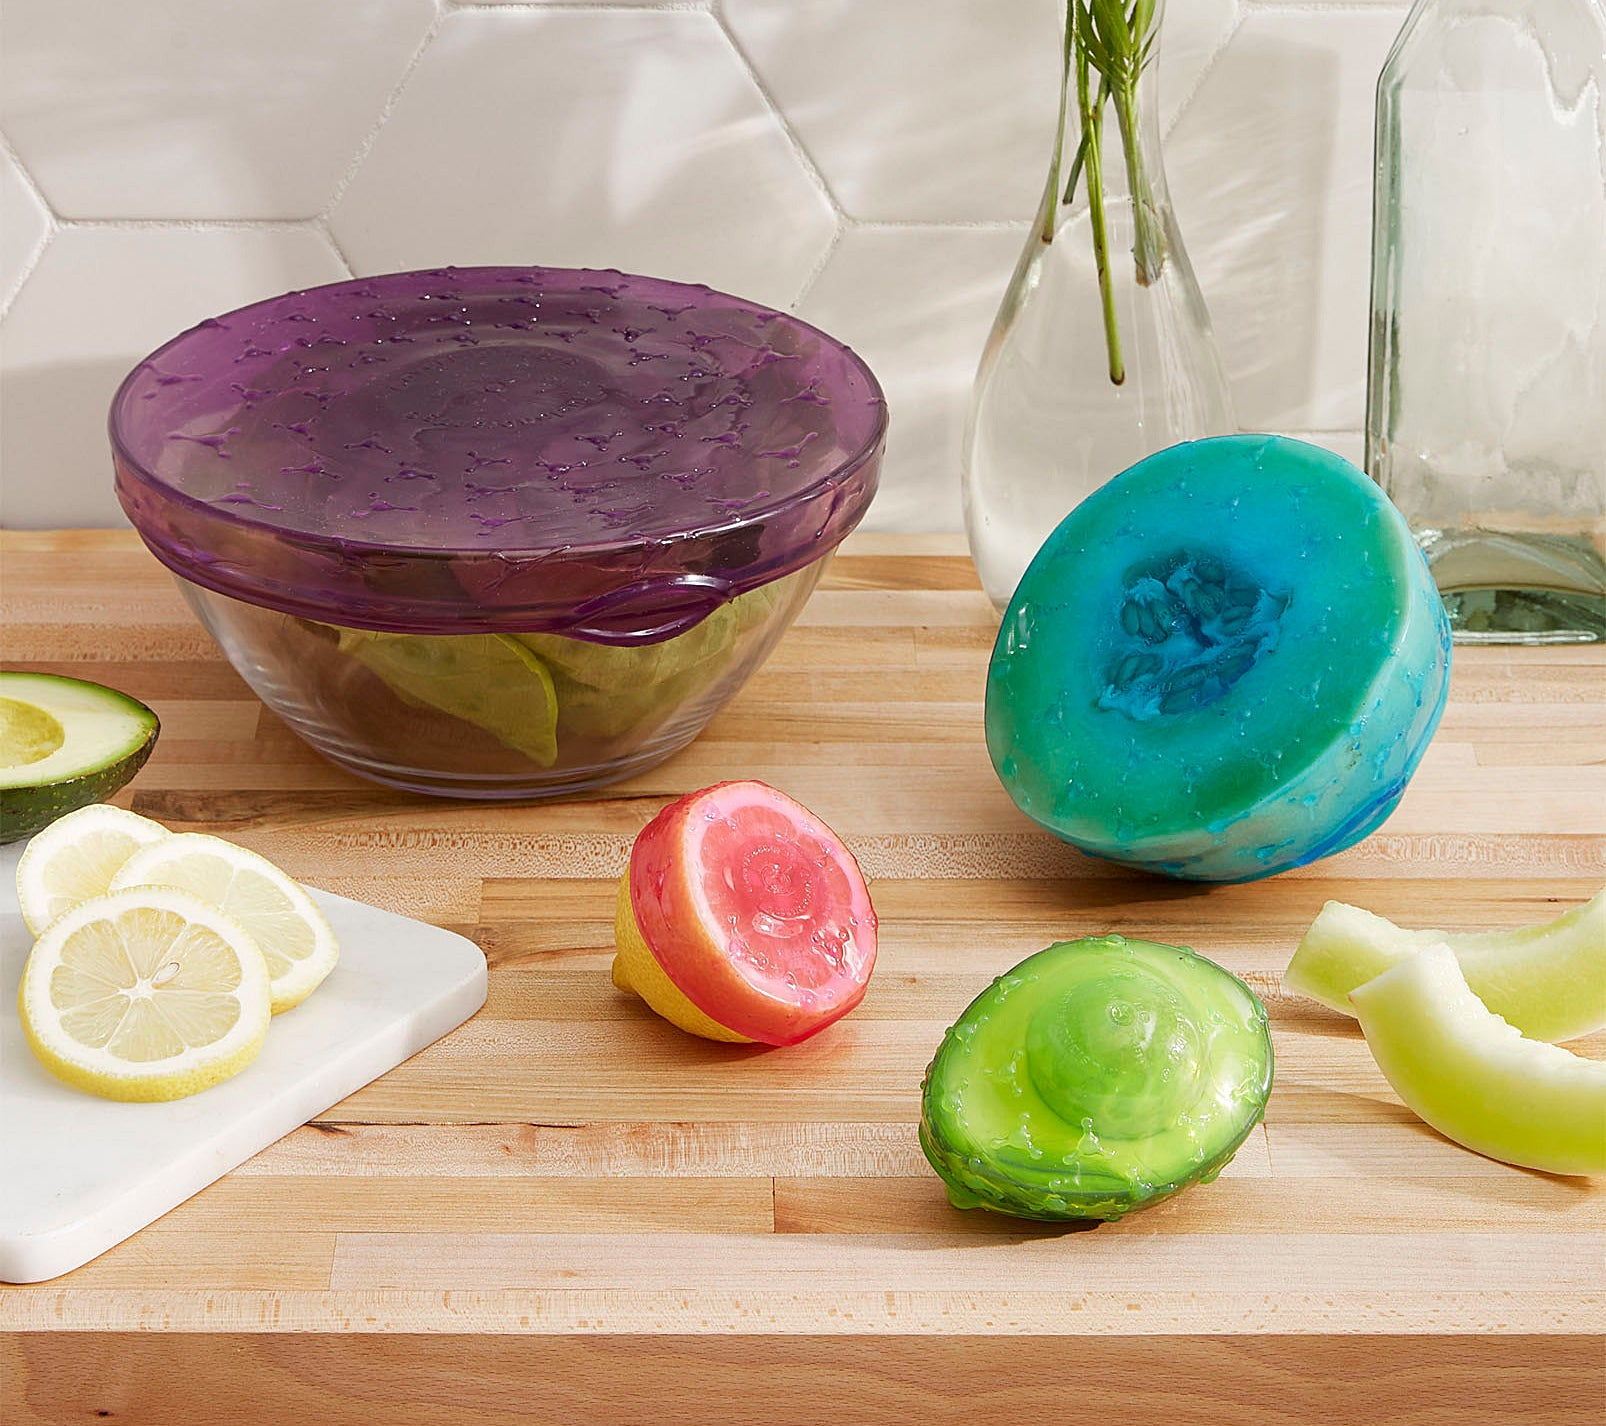 A large glass bowl, along with a half cut lemon, melon, and avocado are covered in a stretchy silicone cover